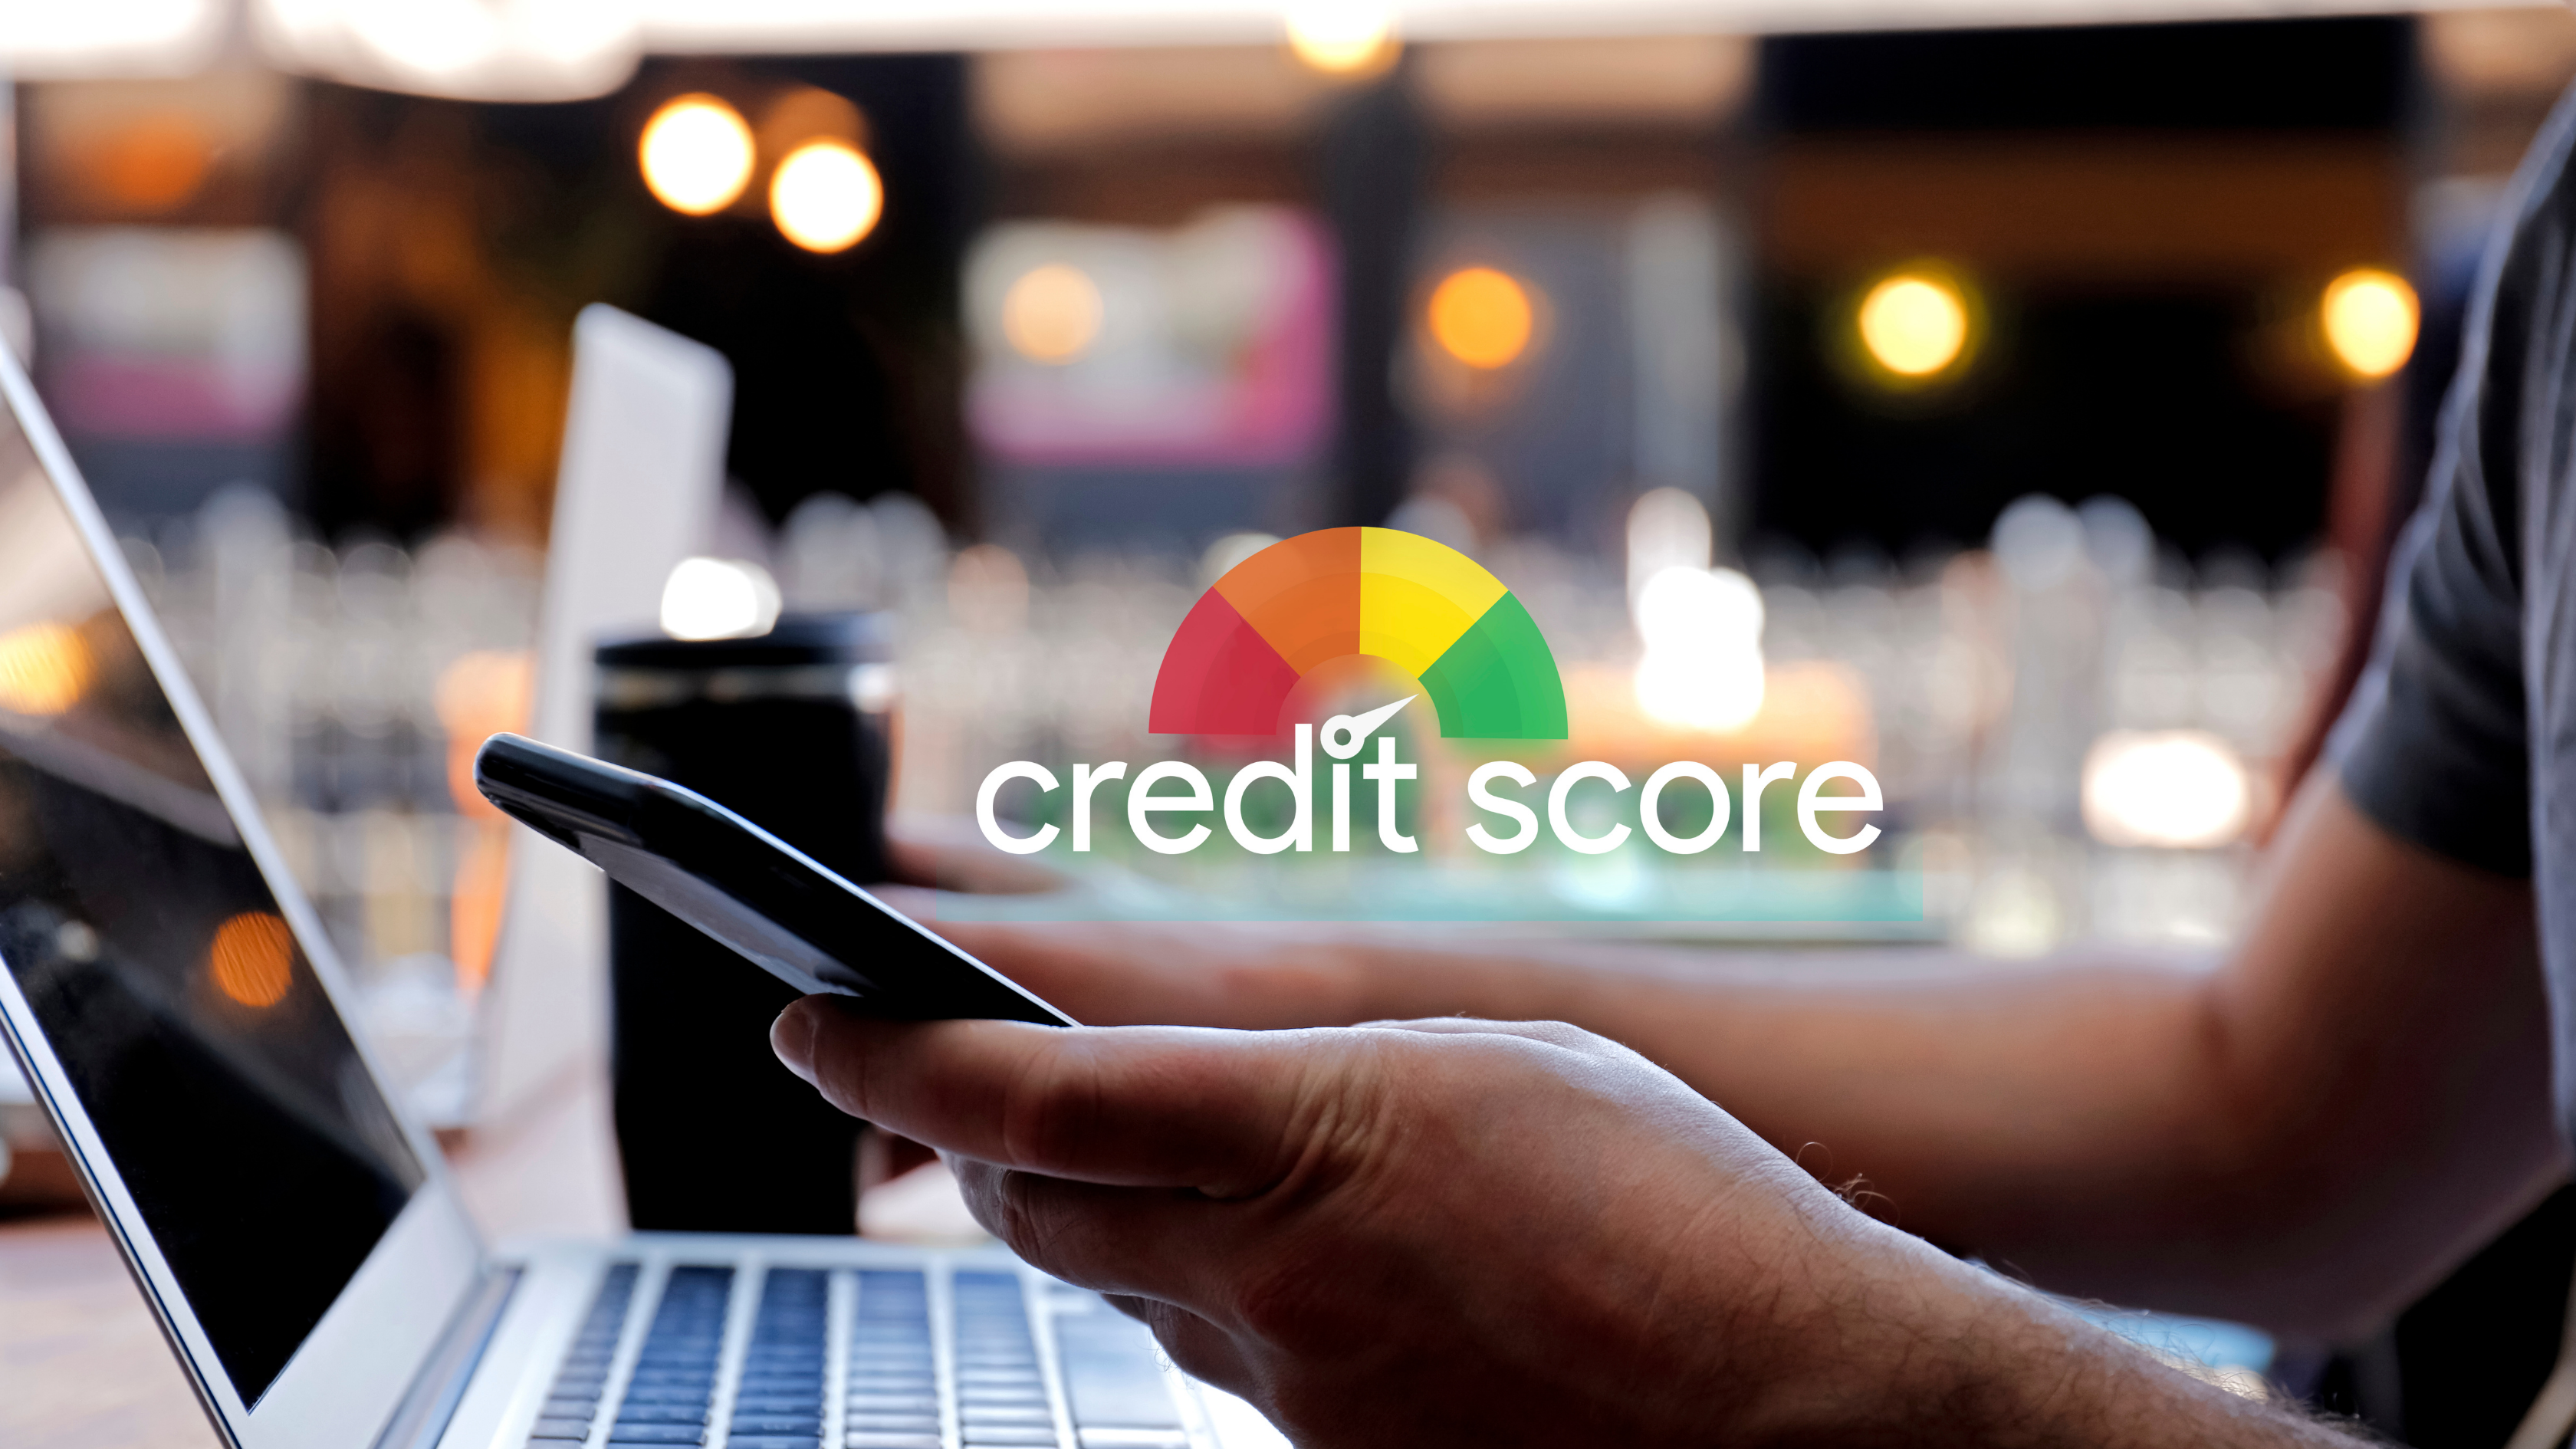 Can I Get Finance if I Have Poor Credit?